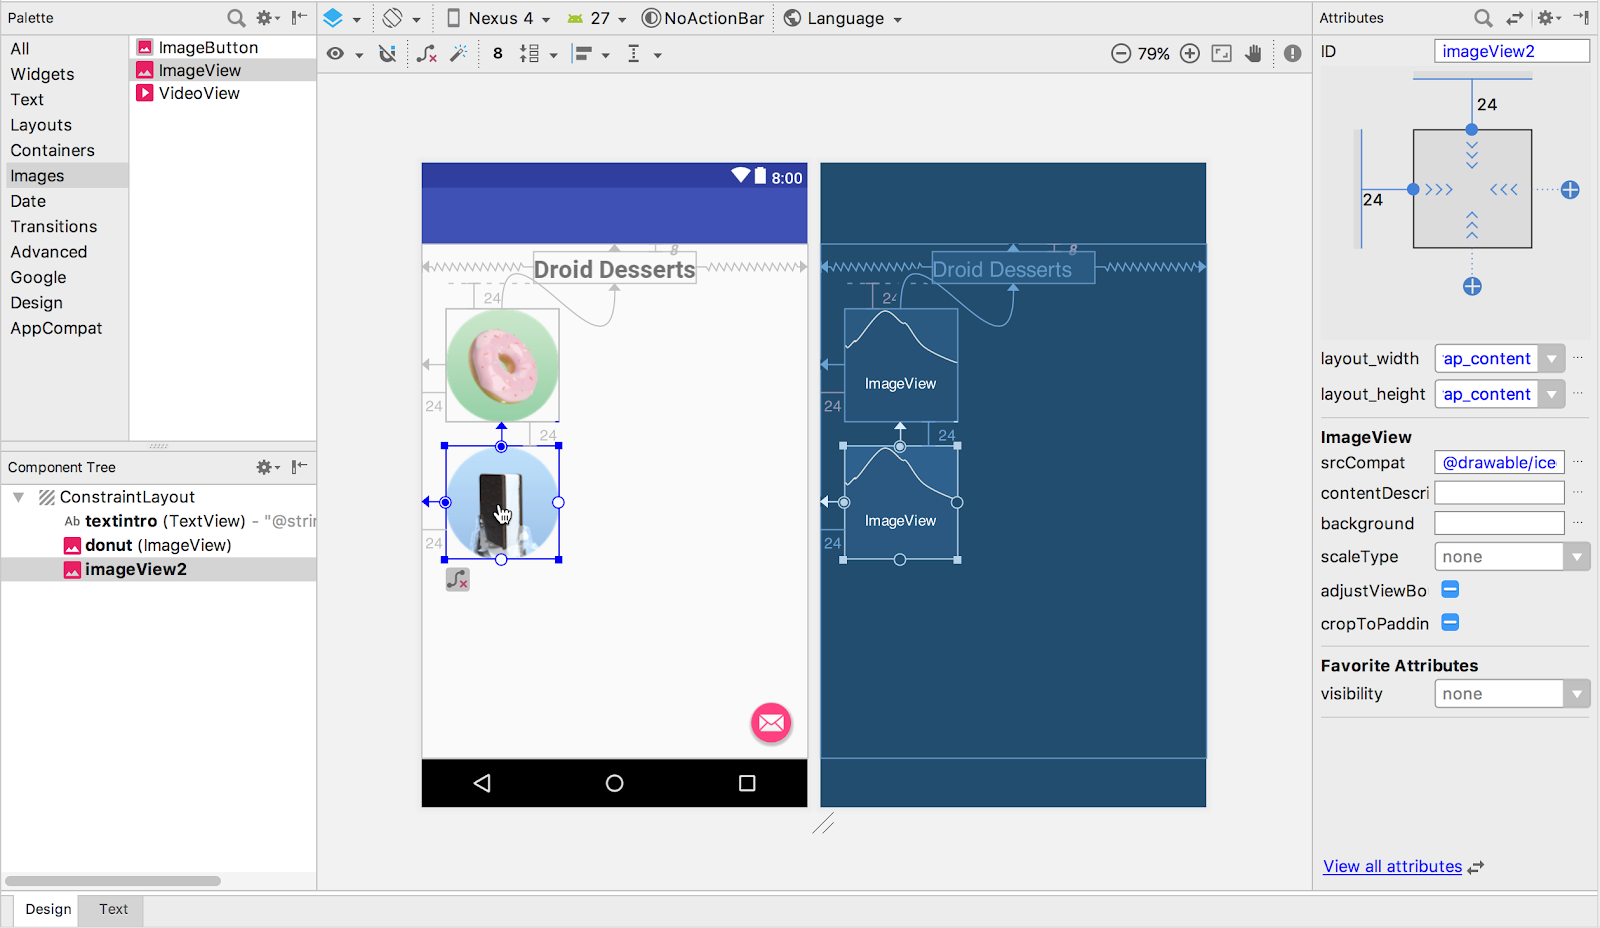 Adding a second ImageView to the layout